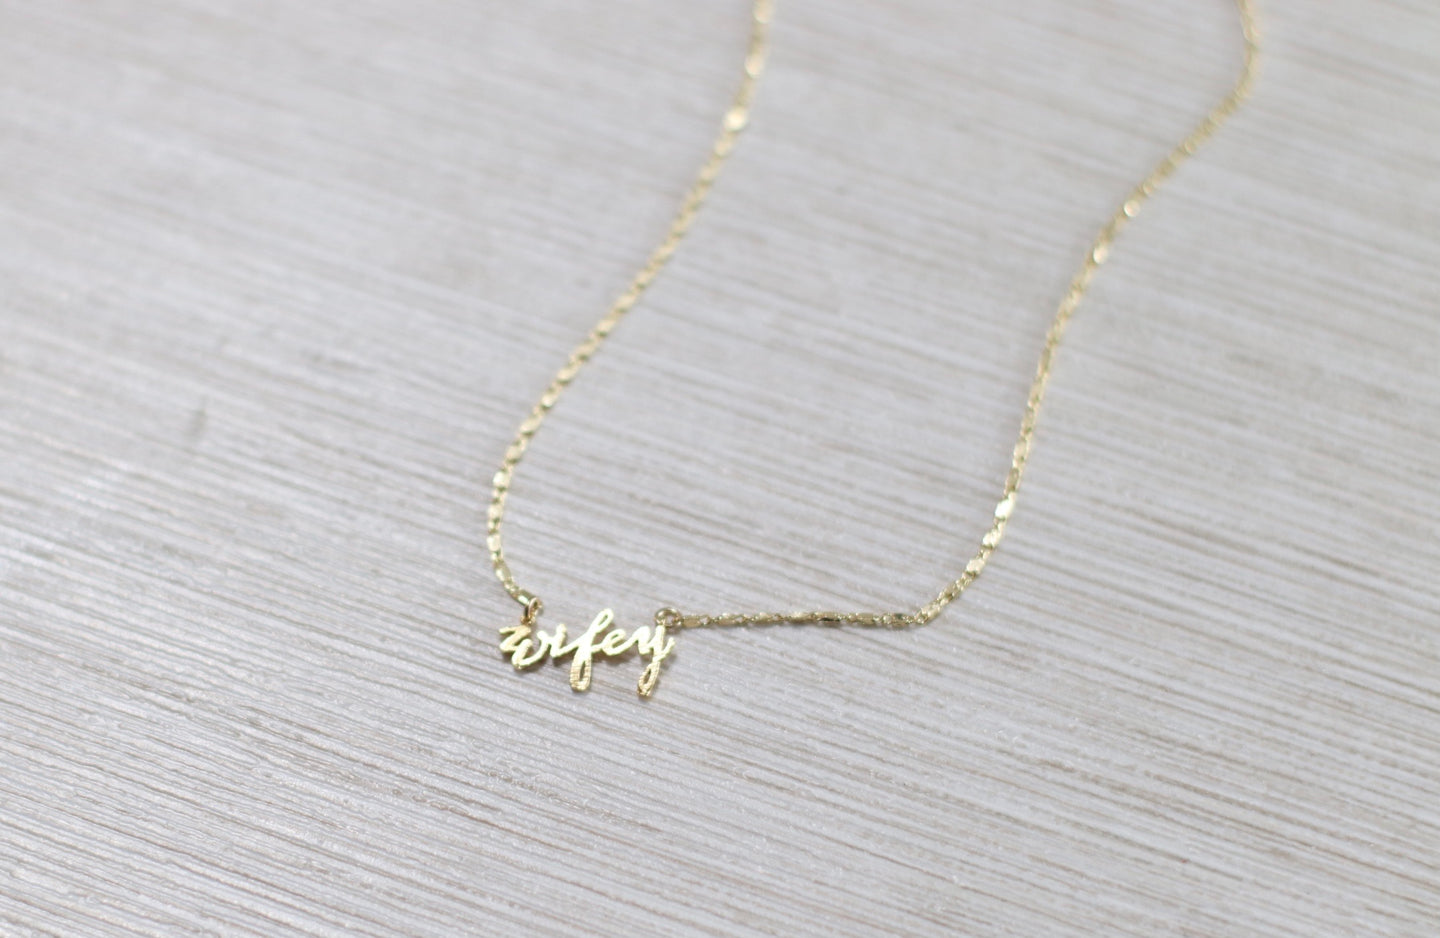 The Wifey Necklace